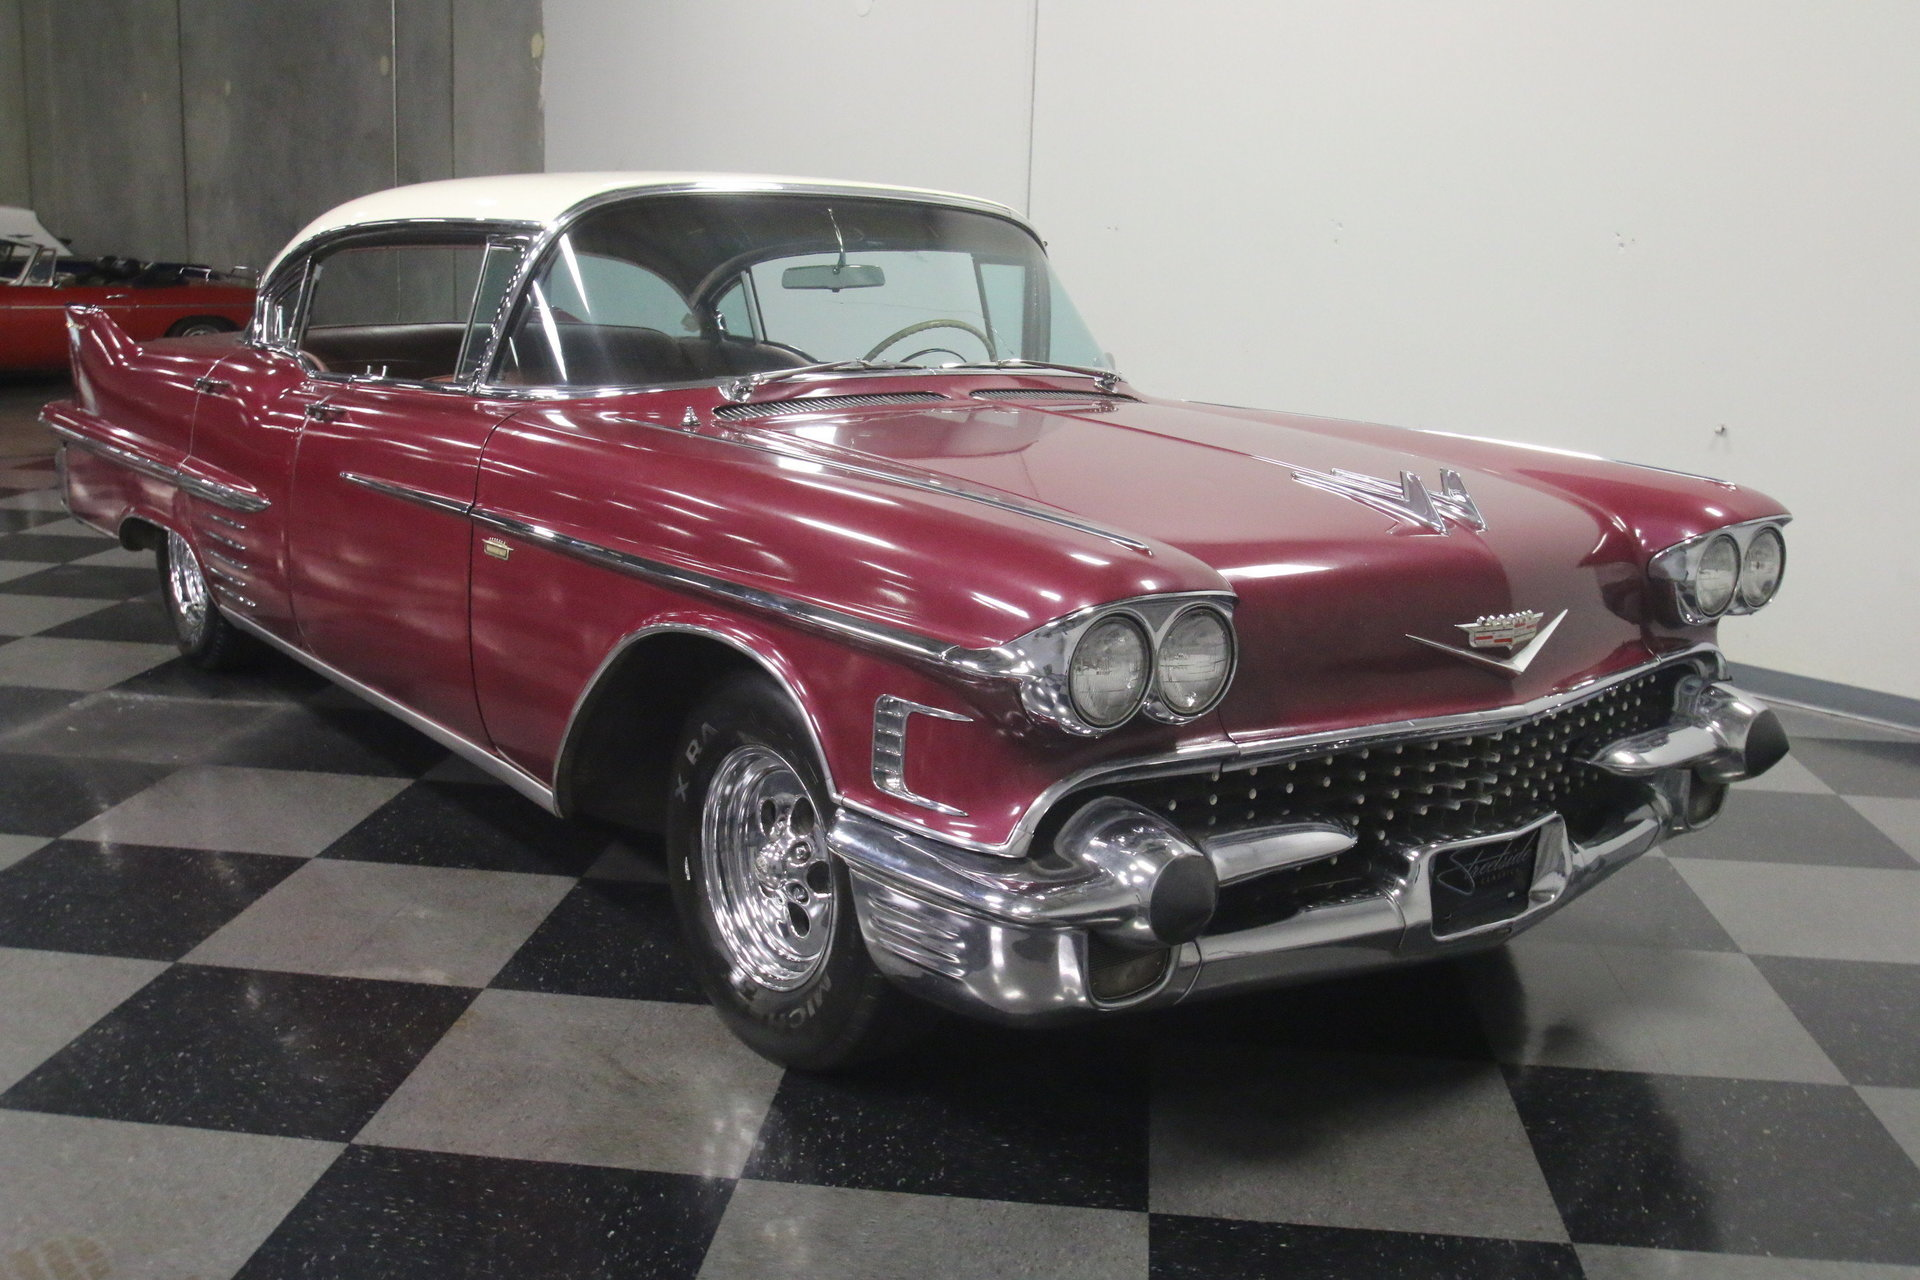 1958 Cadillac Series 62 Streetside Classics The Nations Trusted 50s V8 Engine View 360